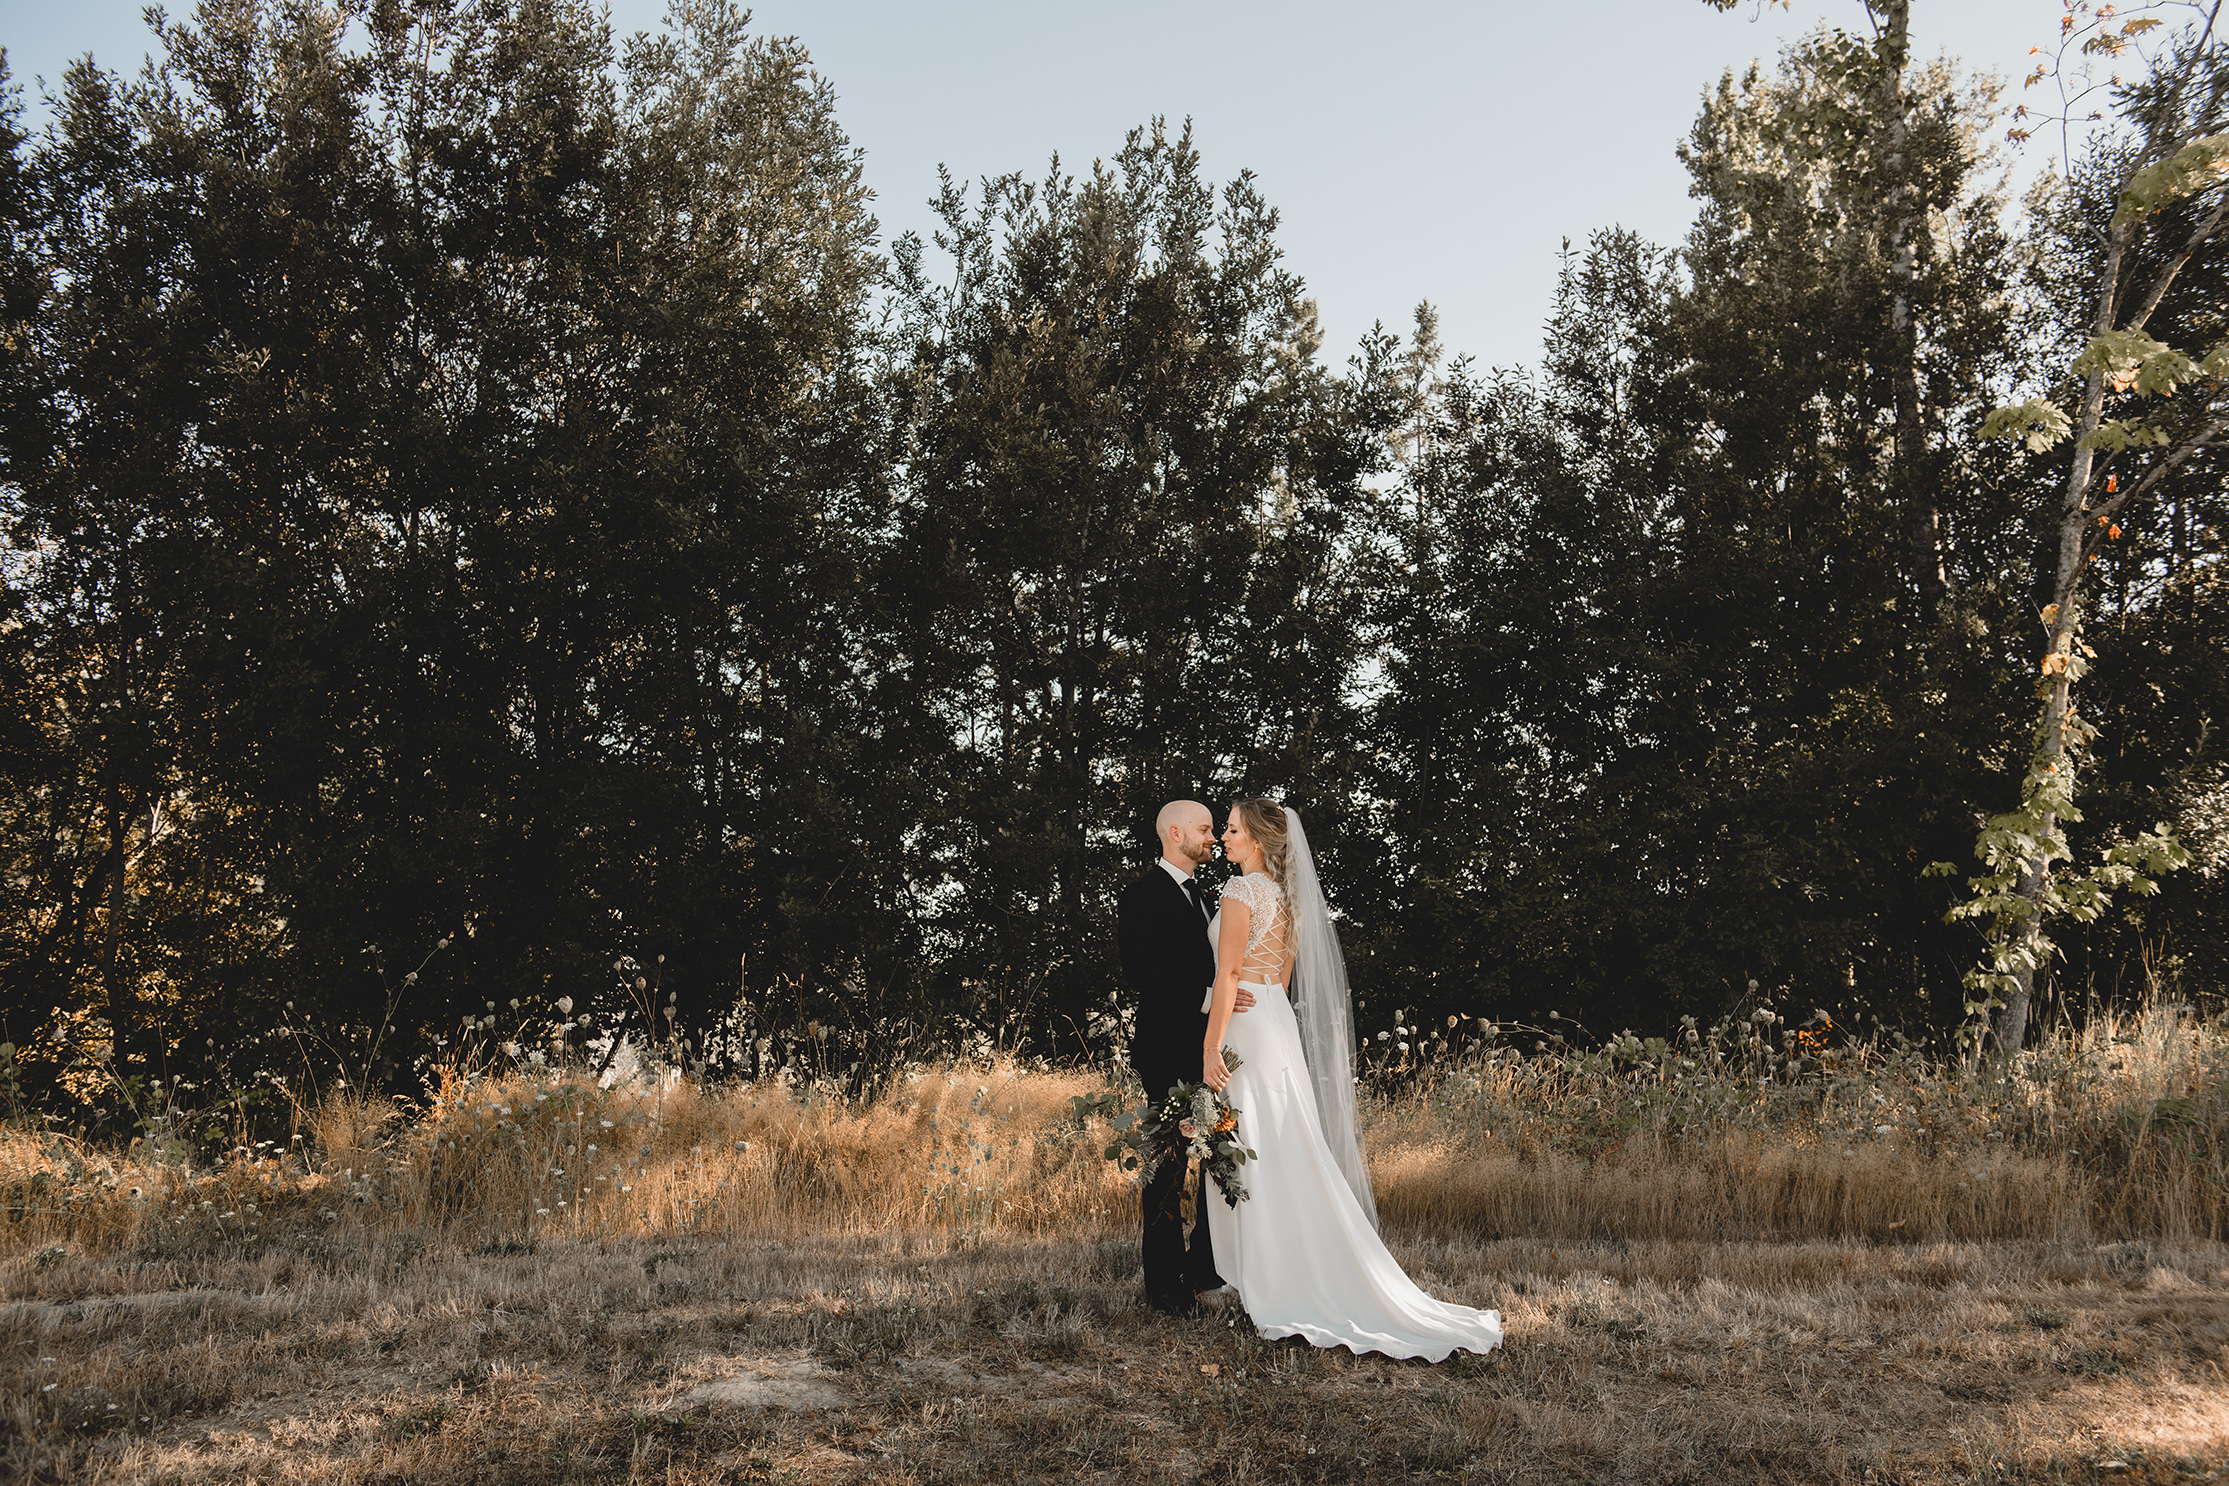 Wedding Photography Vancouver Island BC